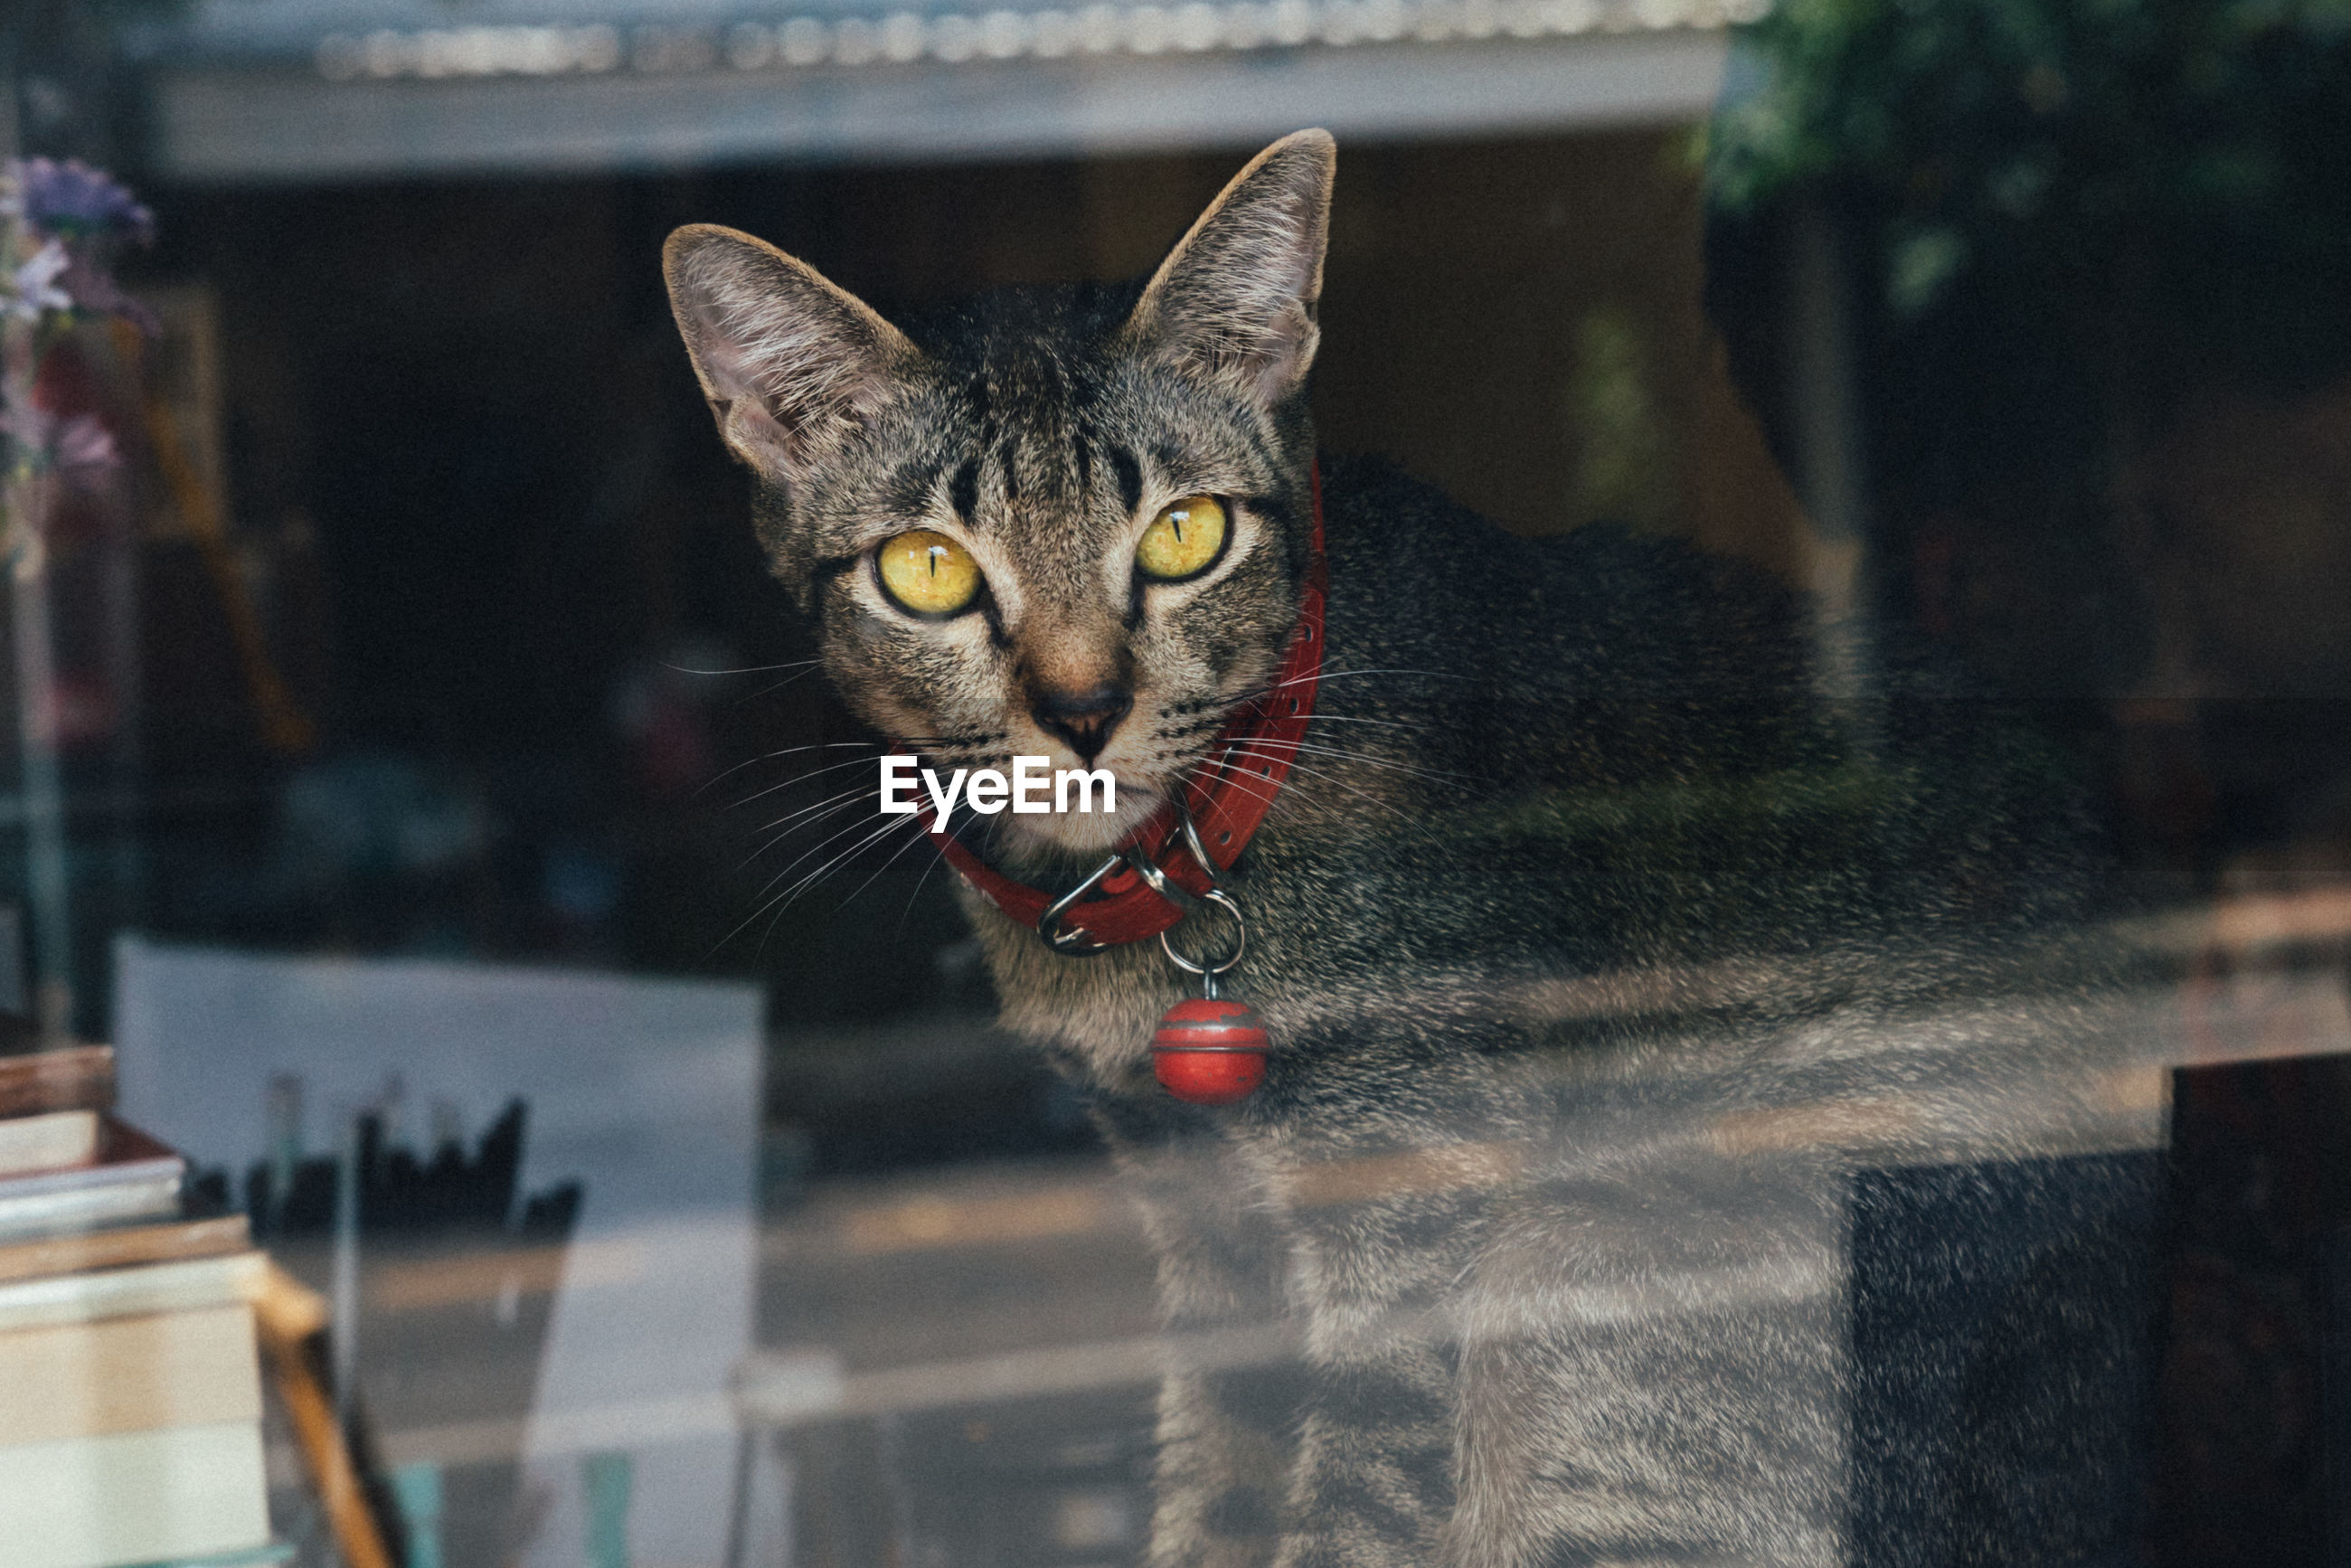 Close-up portrait of cat looking through window